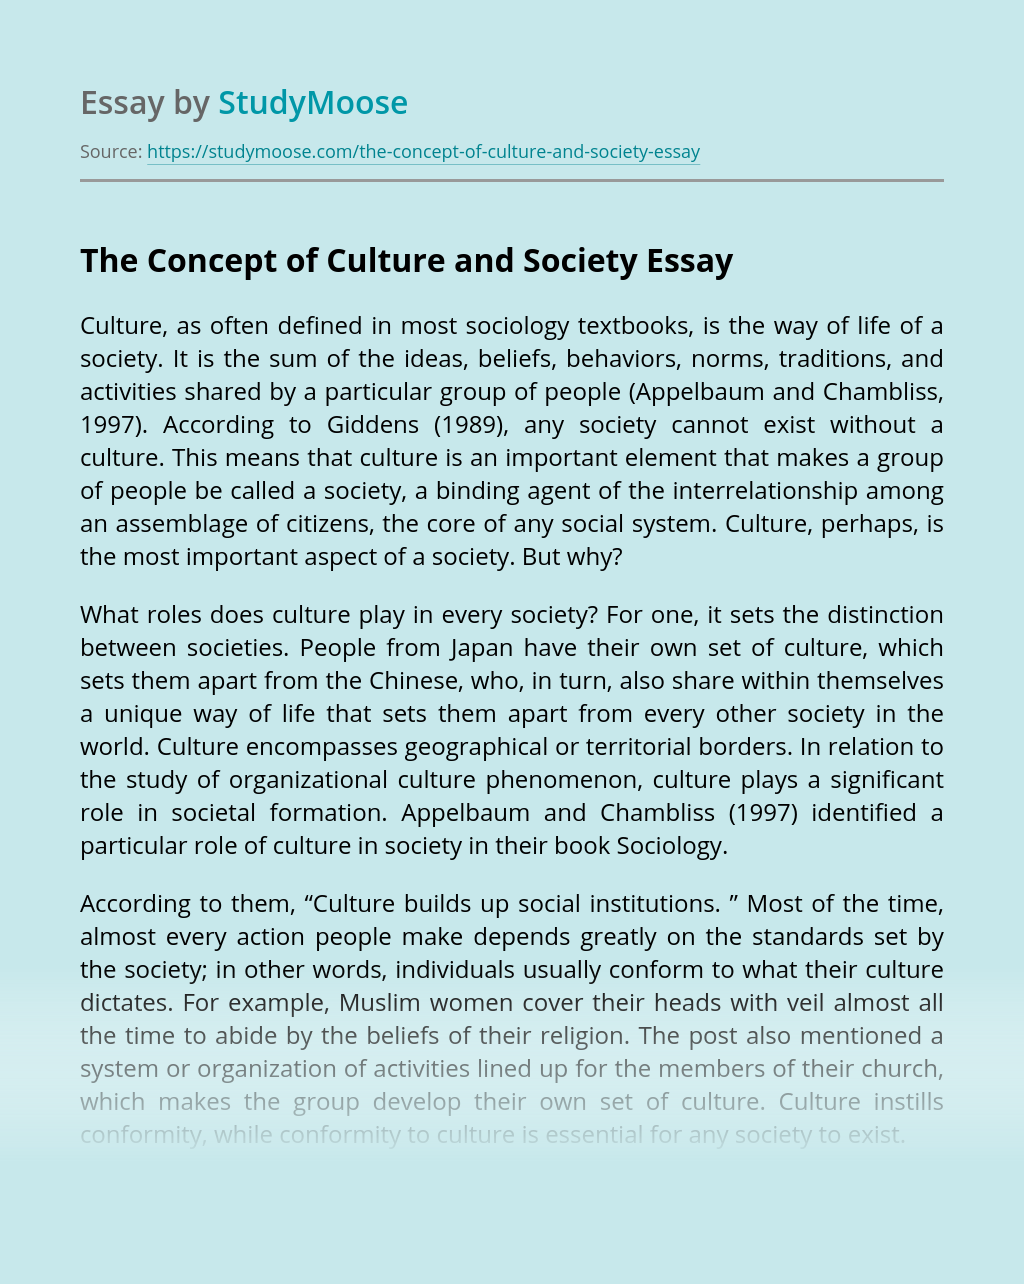 The Concept of Culture and Society